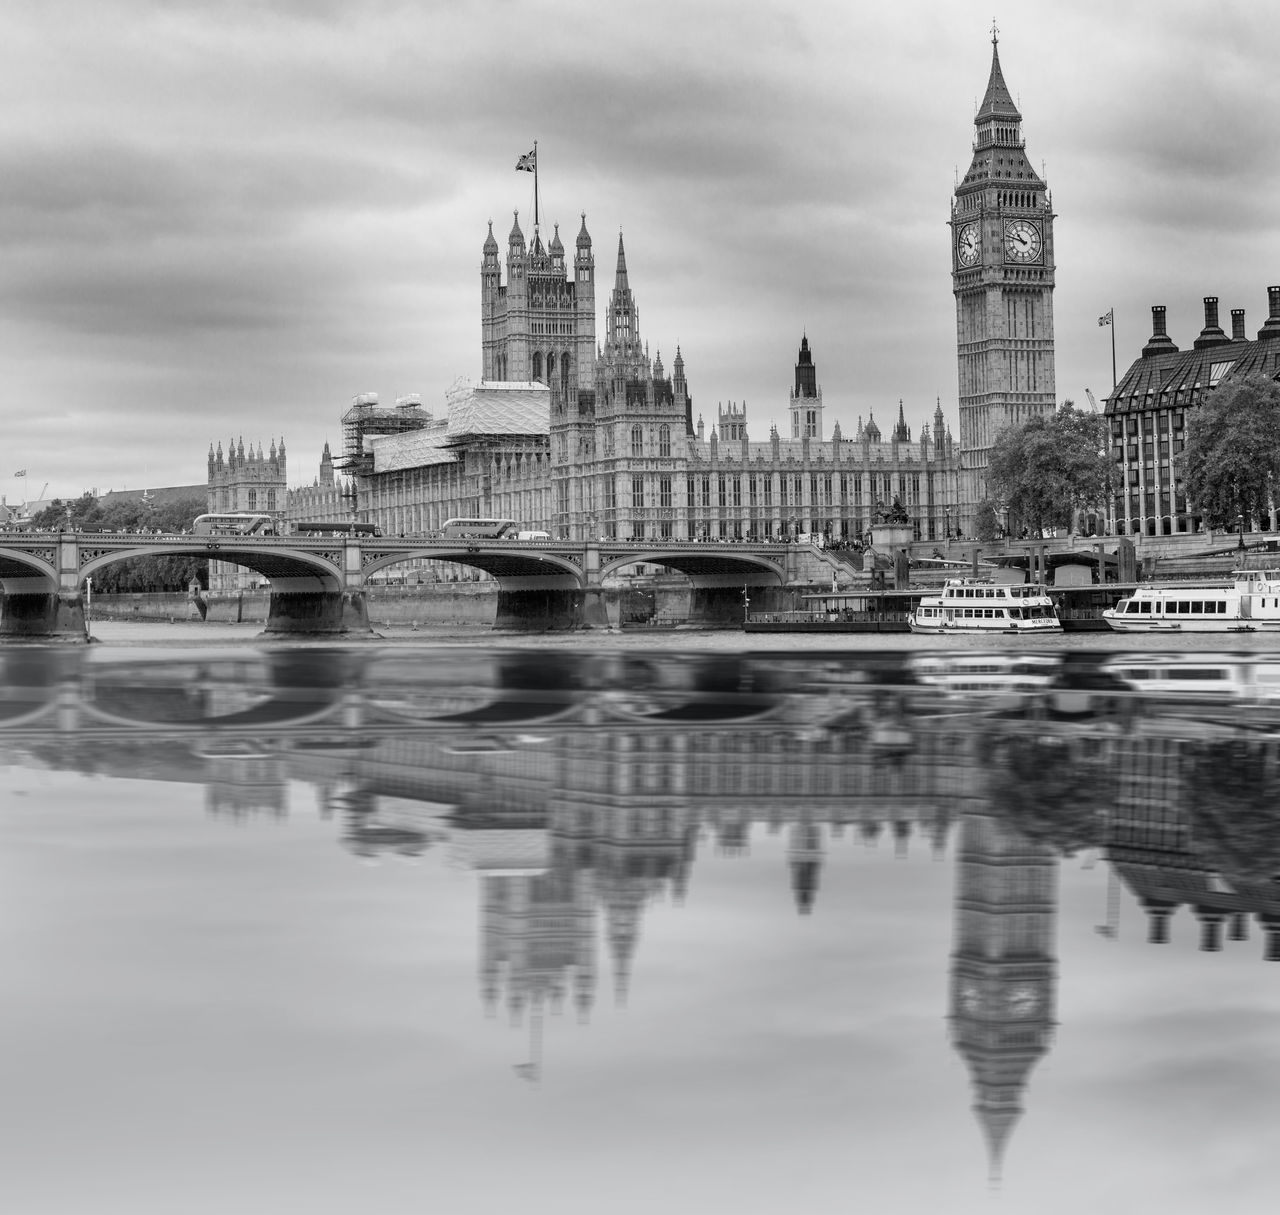 Big Ben and Houses of parliament with good reflection on the Thames in monochrome Architecture Big Ben Building Exterior Built Structure Capital Cities  City City Life Clock Tower Famous Place Houses Of Parliament International Landmark Monochrome Parliament Building Reflection River Thames River Tourism Tourism London Travel Travel Destinations Water Waterfront